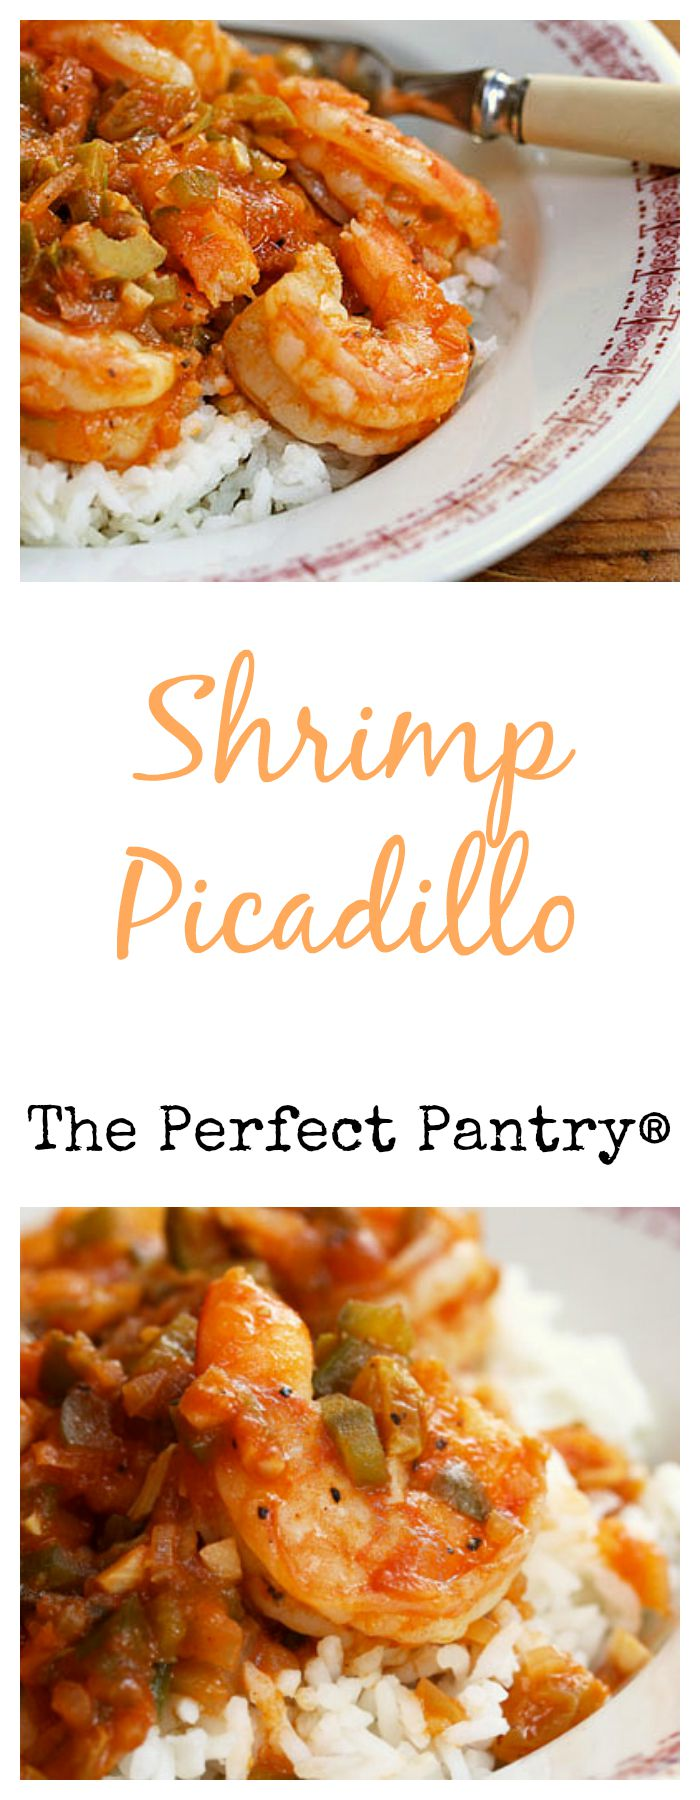 Shrimp picadillo, a simple dish with a Cuban twist, from The Perfect Pantry.